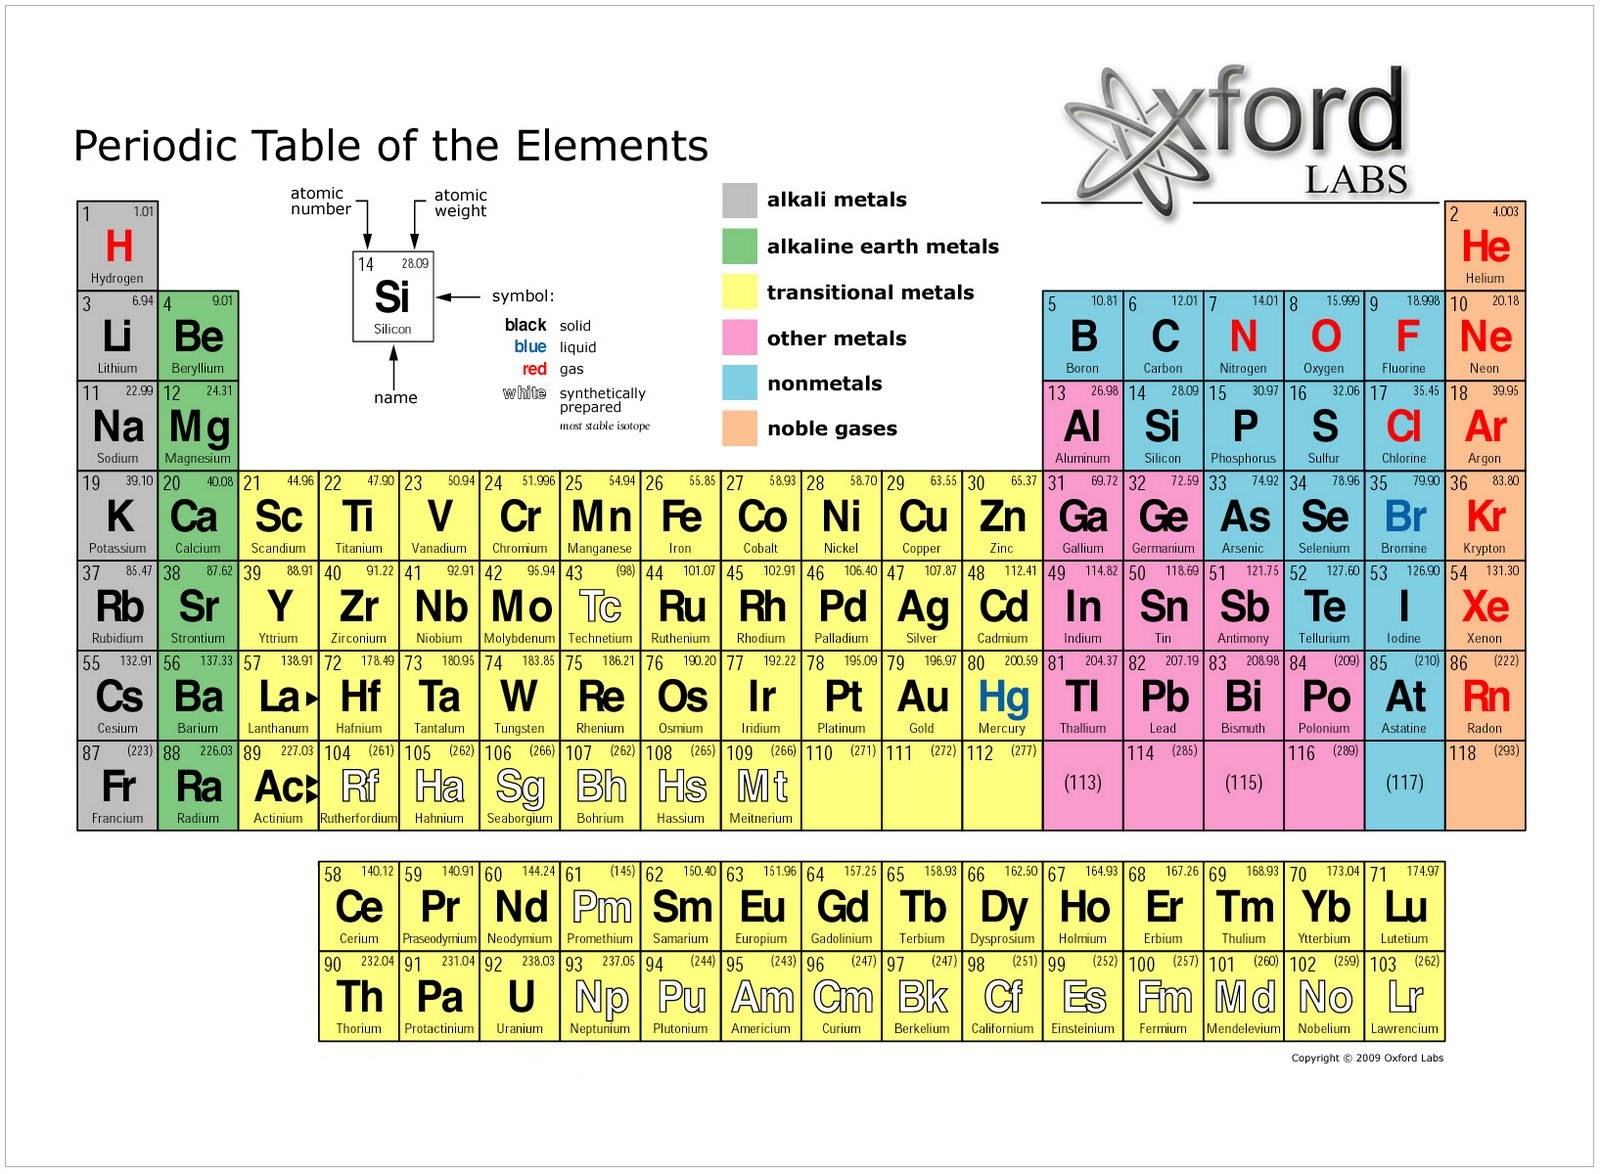 Uuu periodic table gallery periodic table images uuu periodic table choice image periodic table images uuu periodic table choice image periodic table images gamestrikefo Gallery